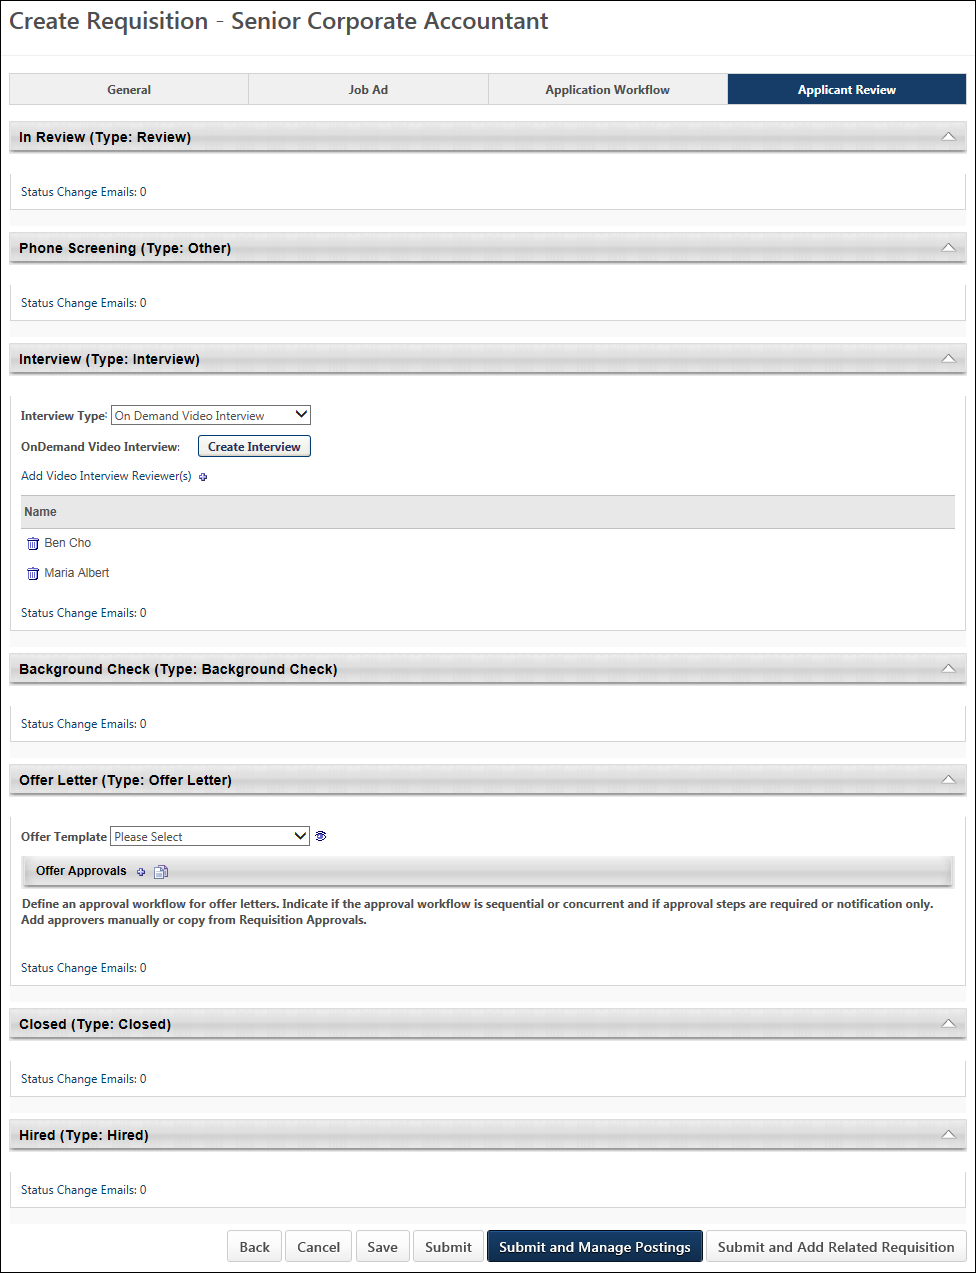 Create/Edit Requisition - Applicant Review Tab Overview